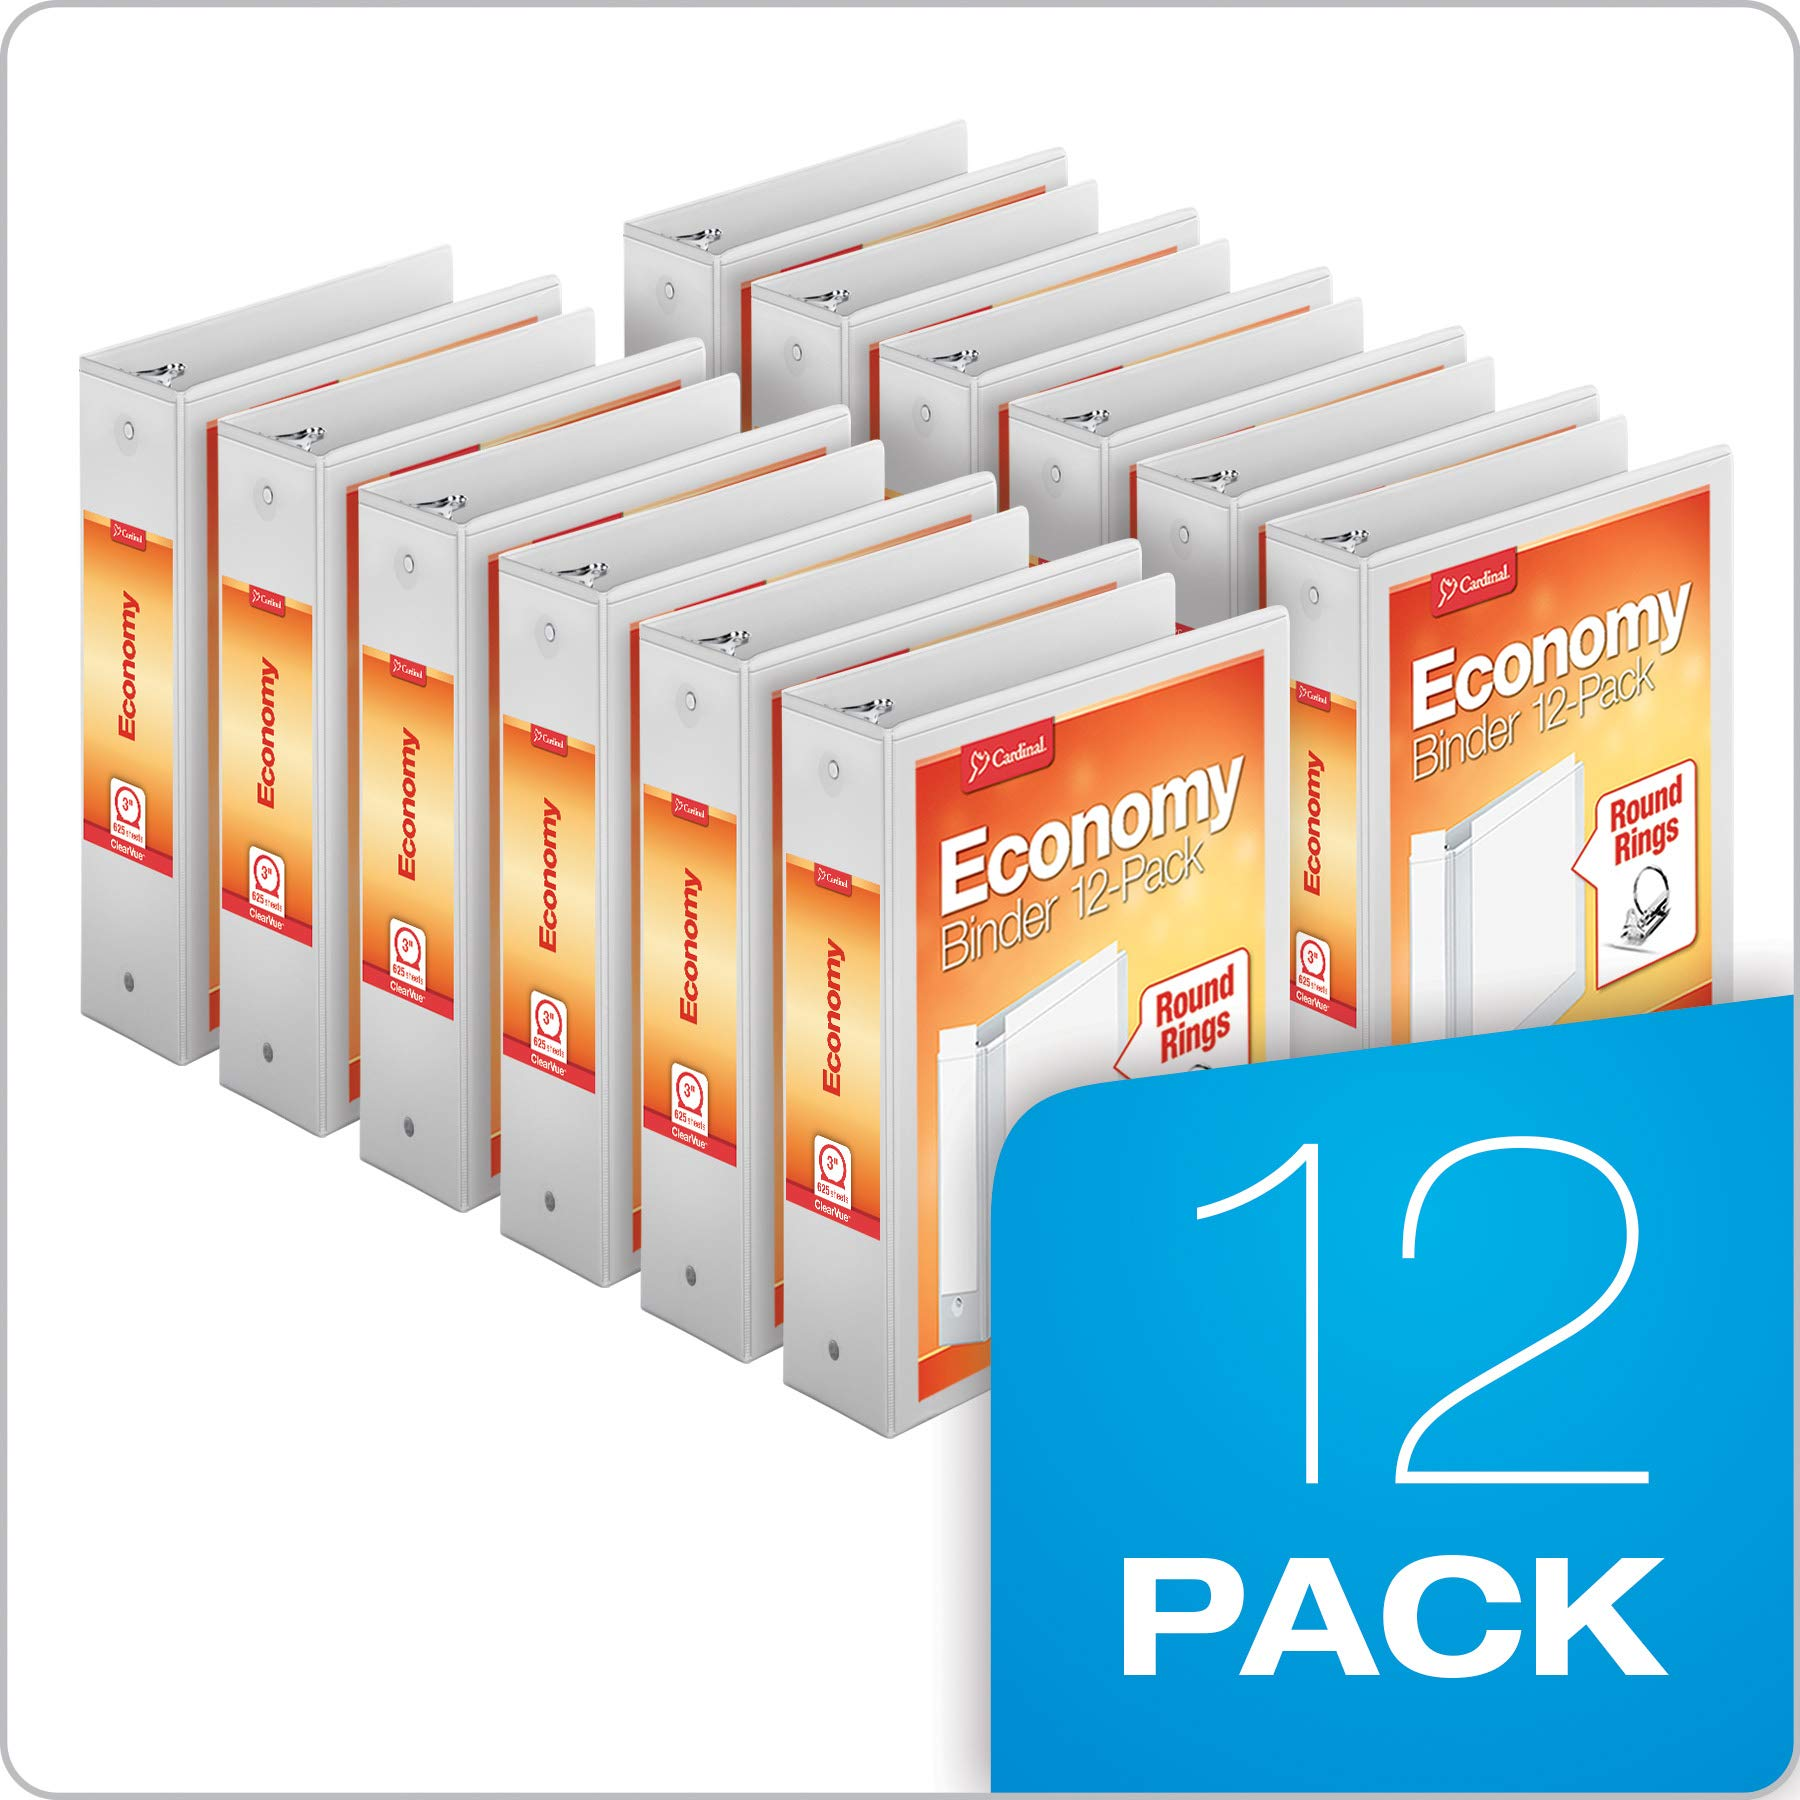 Cardinal Economy 3-Ring Binders, 3'', Round Rings, Holds 625 Sheets, ClearVue Presentation View, Non-Stick, White, Carton of 12 (90651) by Cardinal (Image #6)